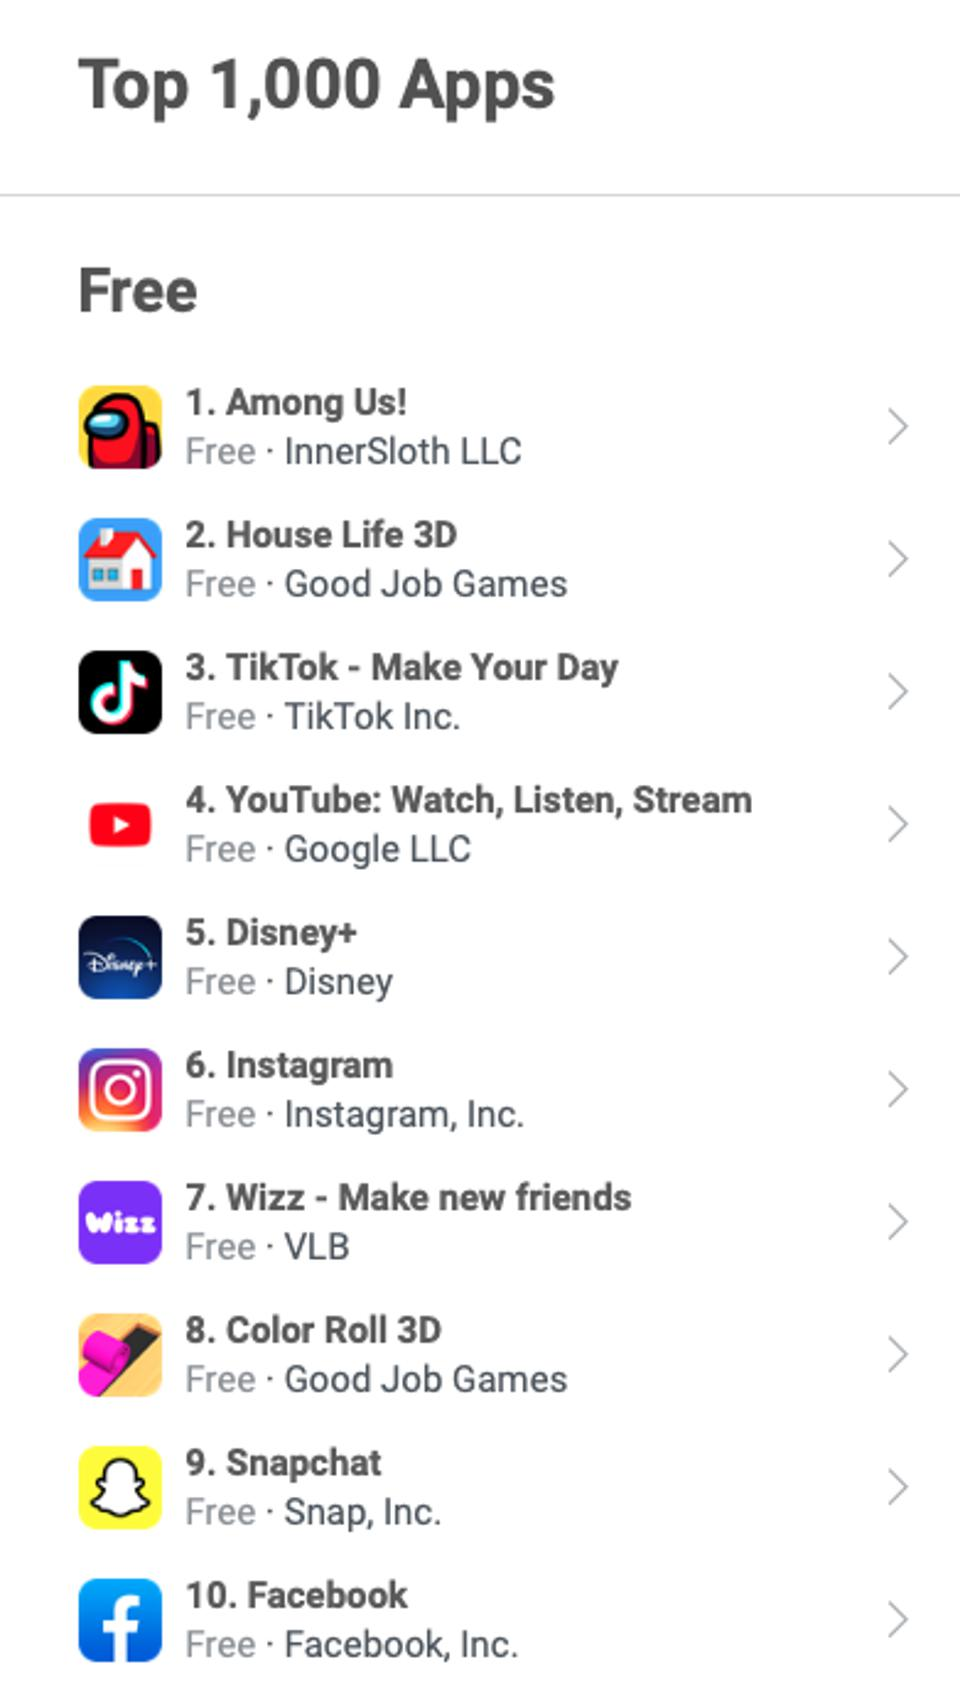 Data from AppFigures indicates that TikTok is currently the third most-downloaded app in the United States.